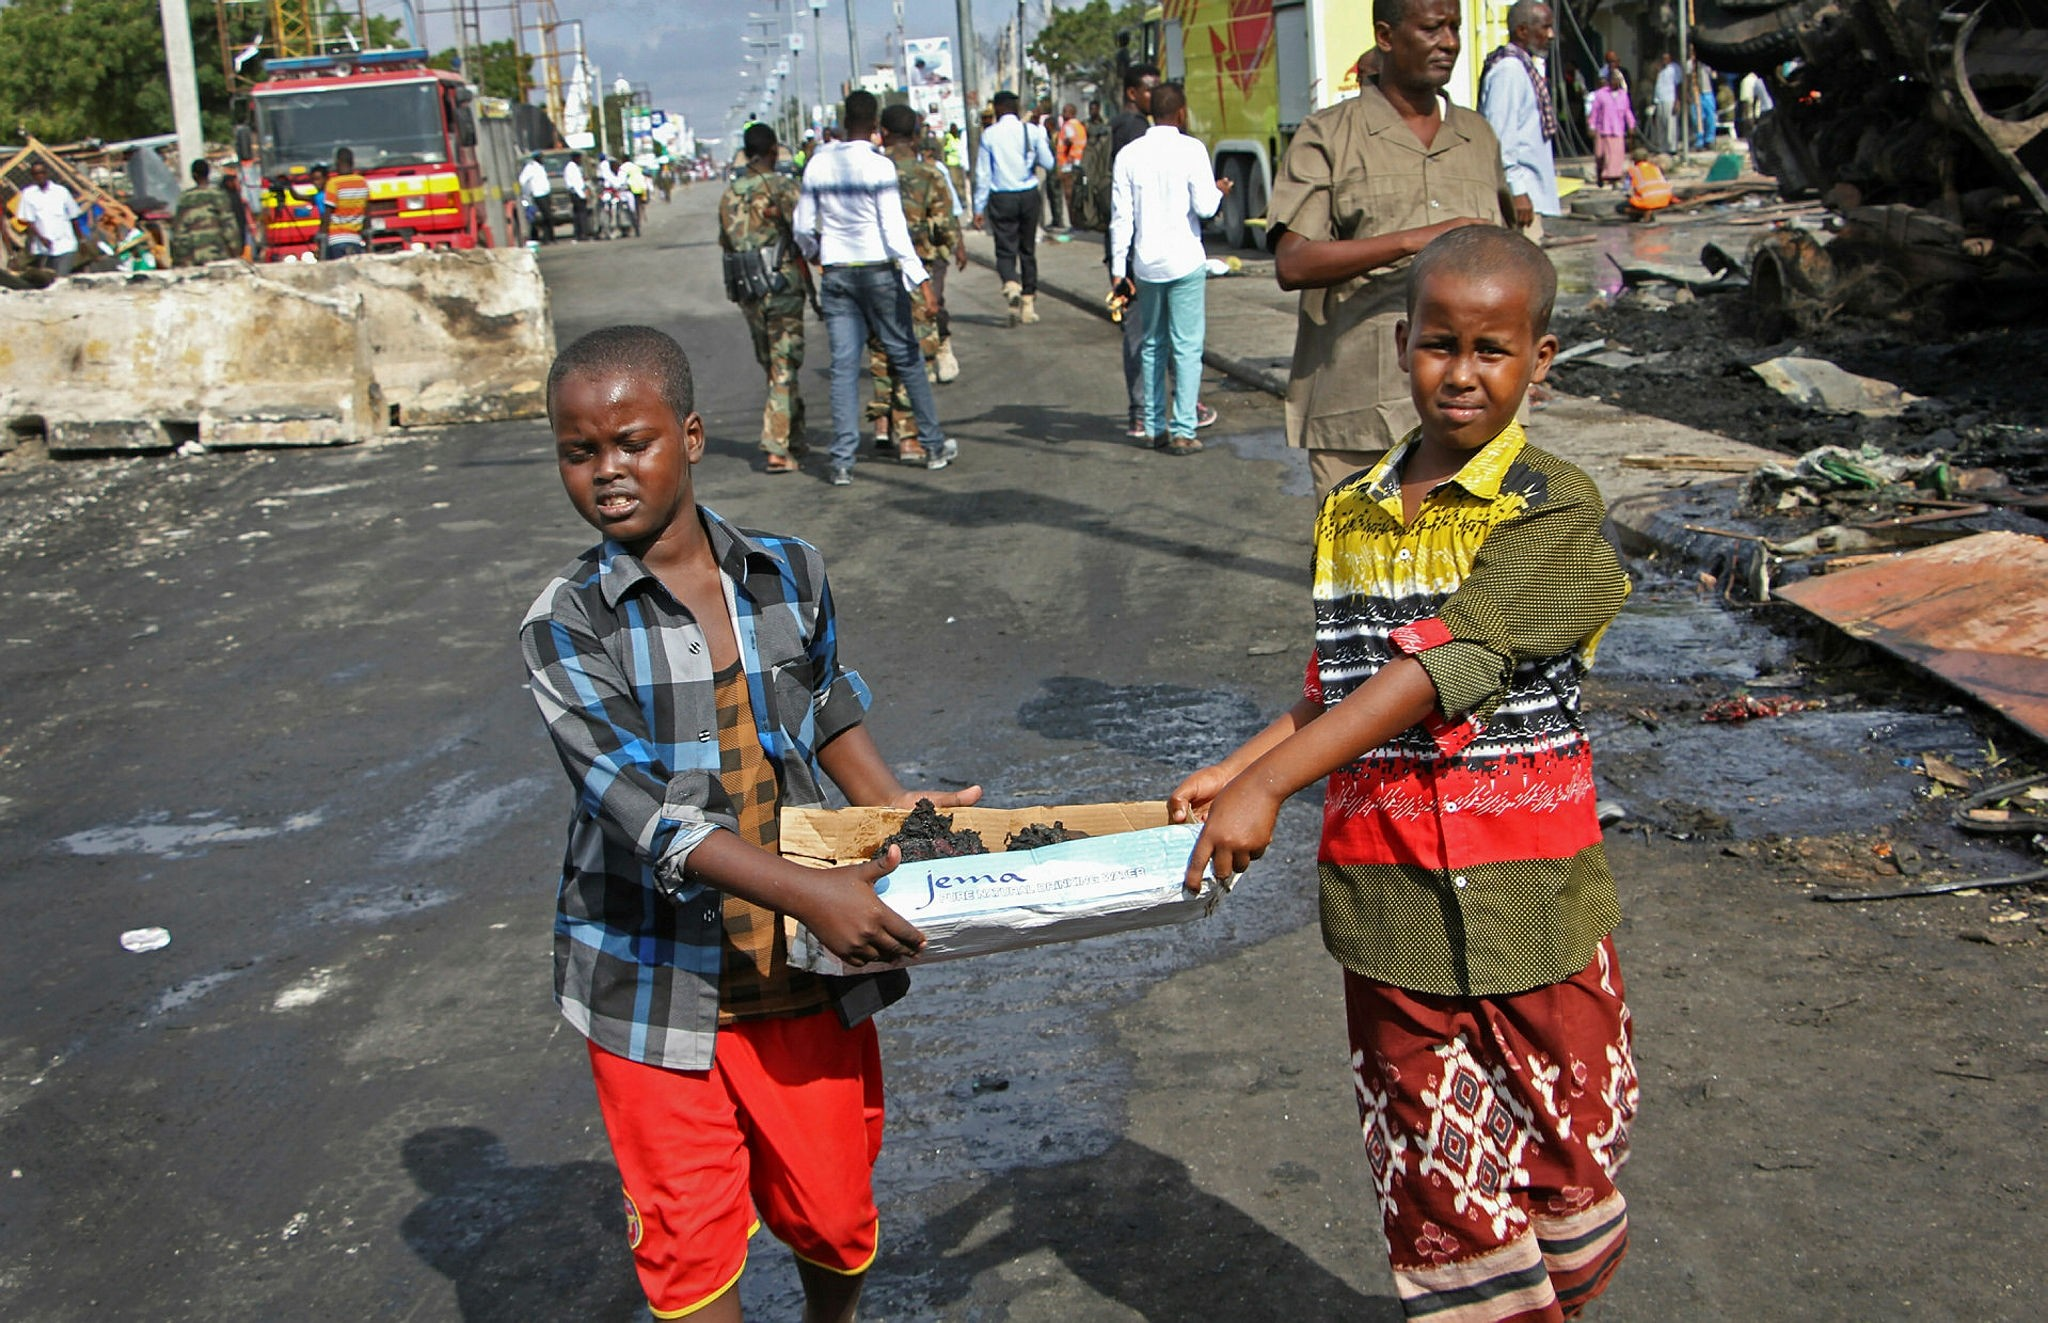 In this 2017 file photo, Somali children assist other civilians & security forces in their rescue efforts by carrying away unidentified charred human remains in a cardboard box, to clear the scene of the previous day's blast, in Mogadishu. (AP Photo)